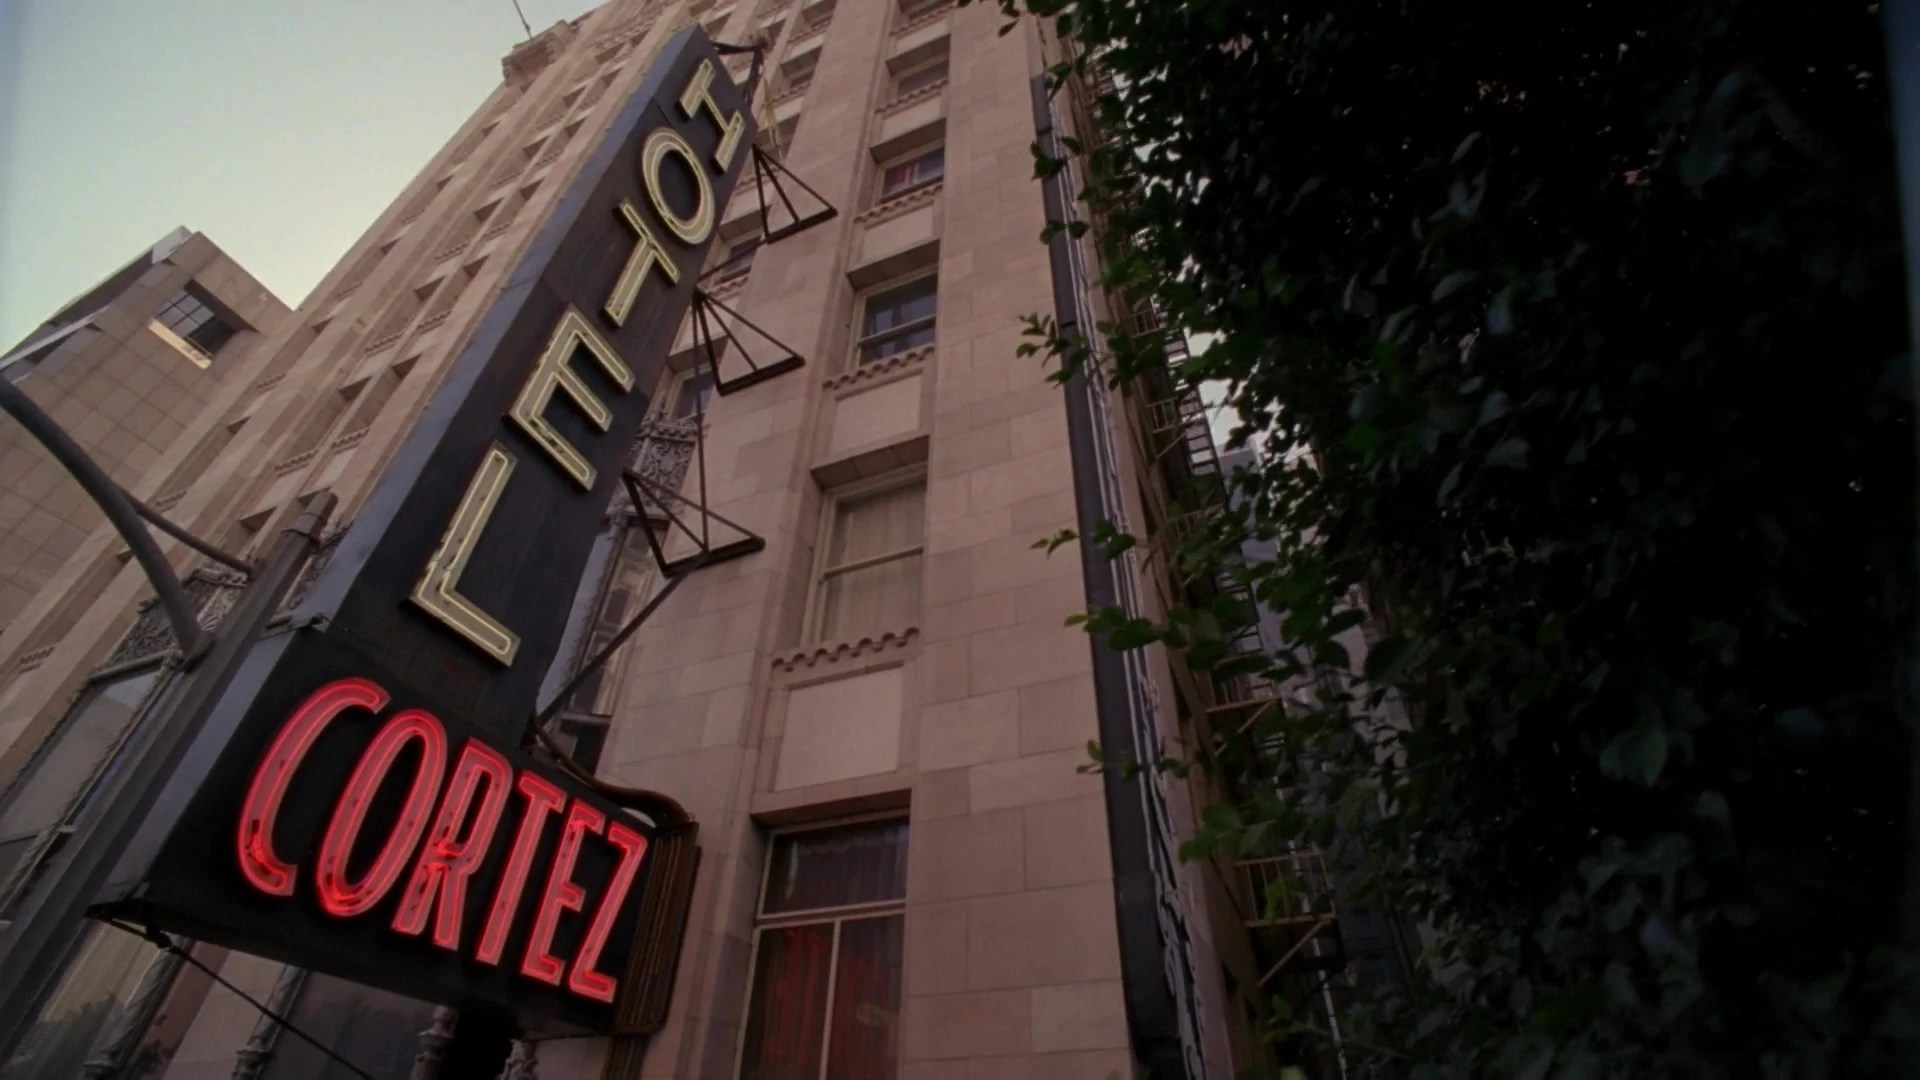 Hotel Cortez American Horror Story